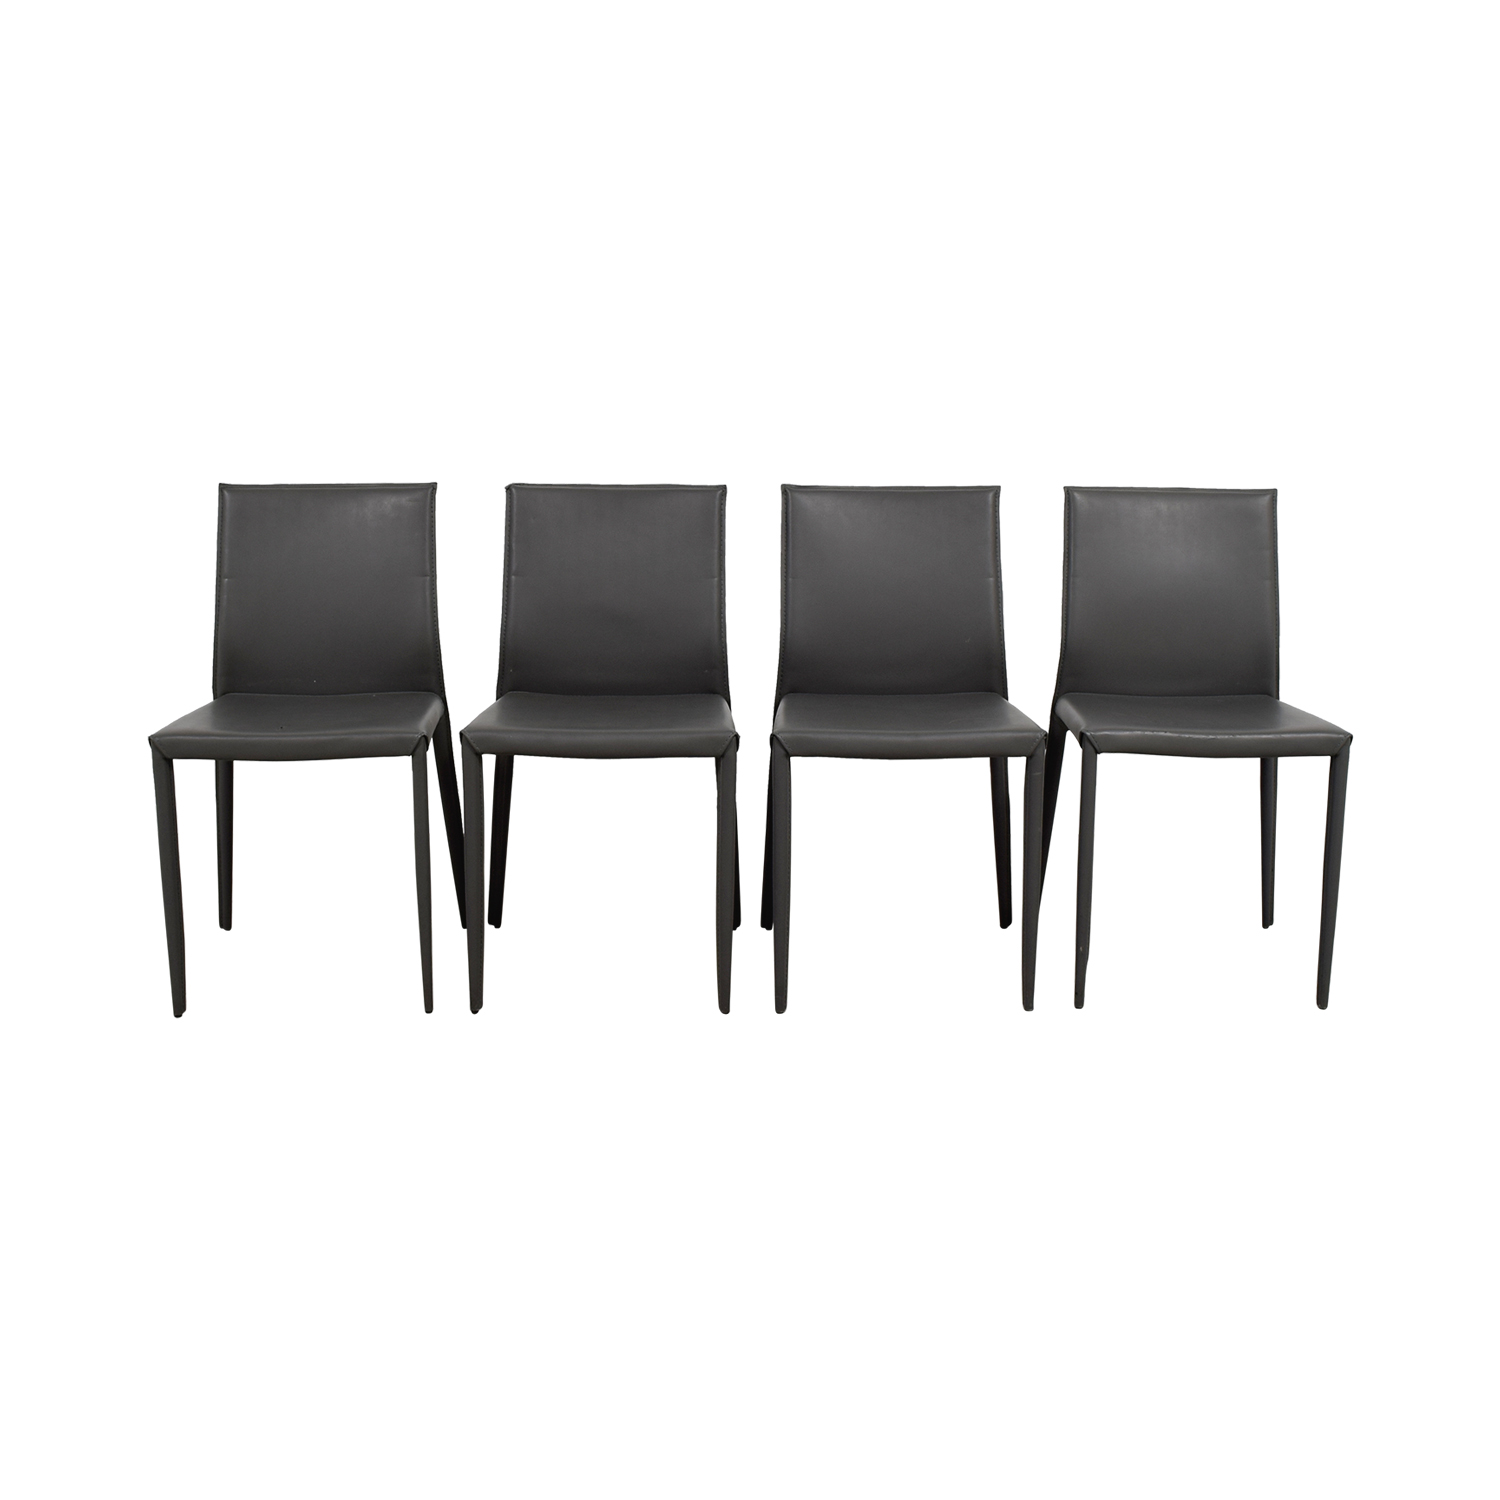 Superieur 75% OFF   Room U0026 Board Room U0026 Board Grey Leather Dining Chairs / Chairs